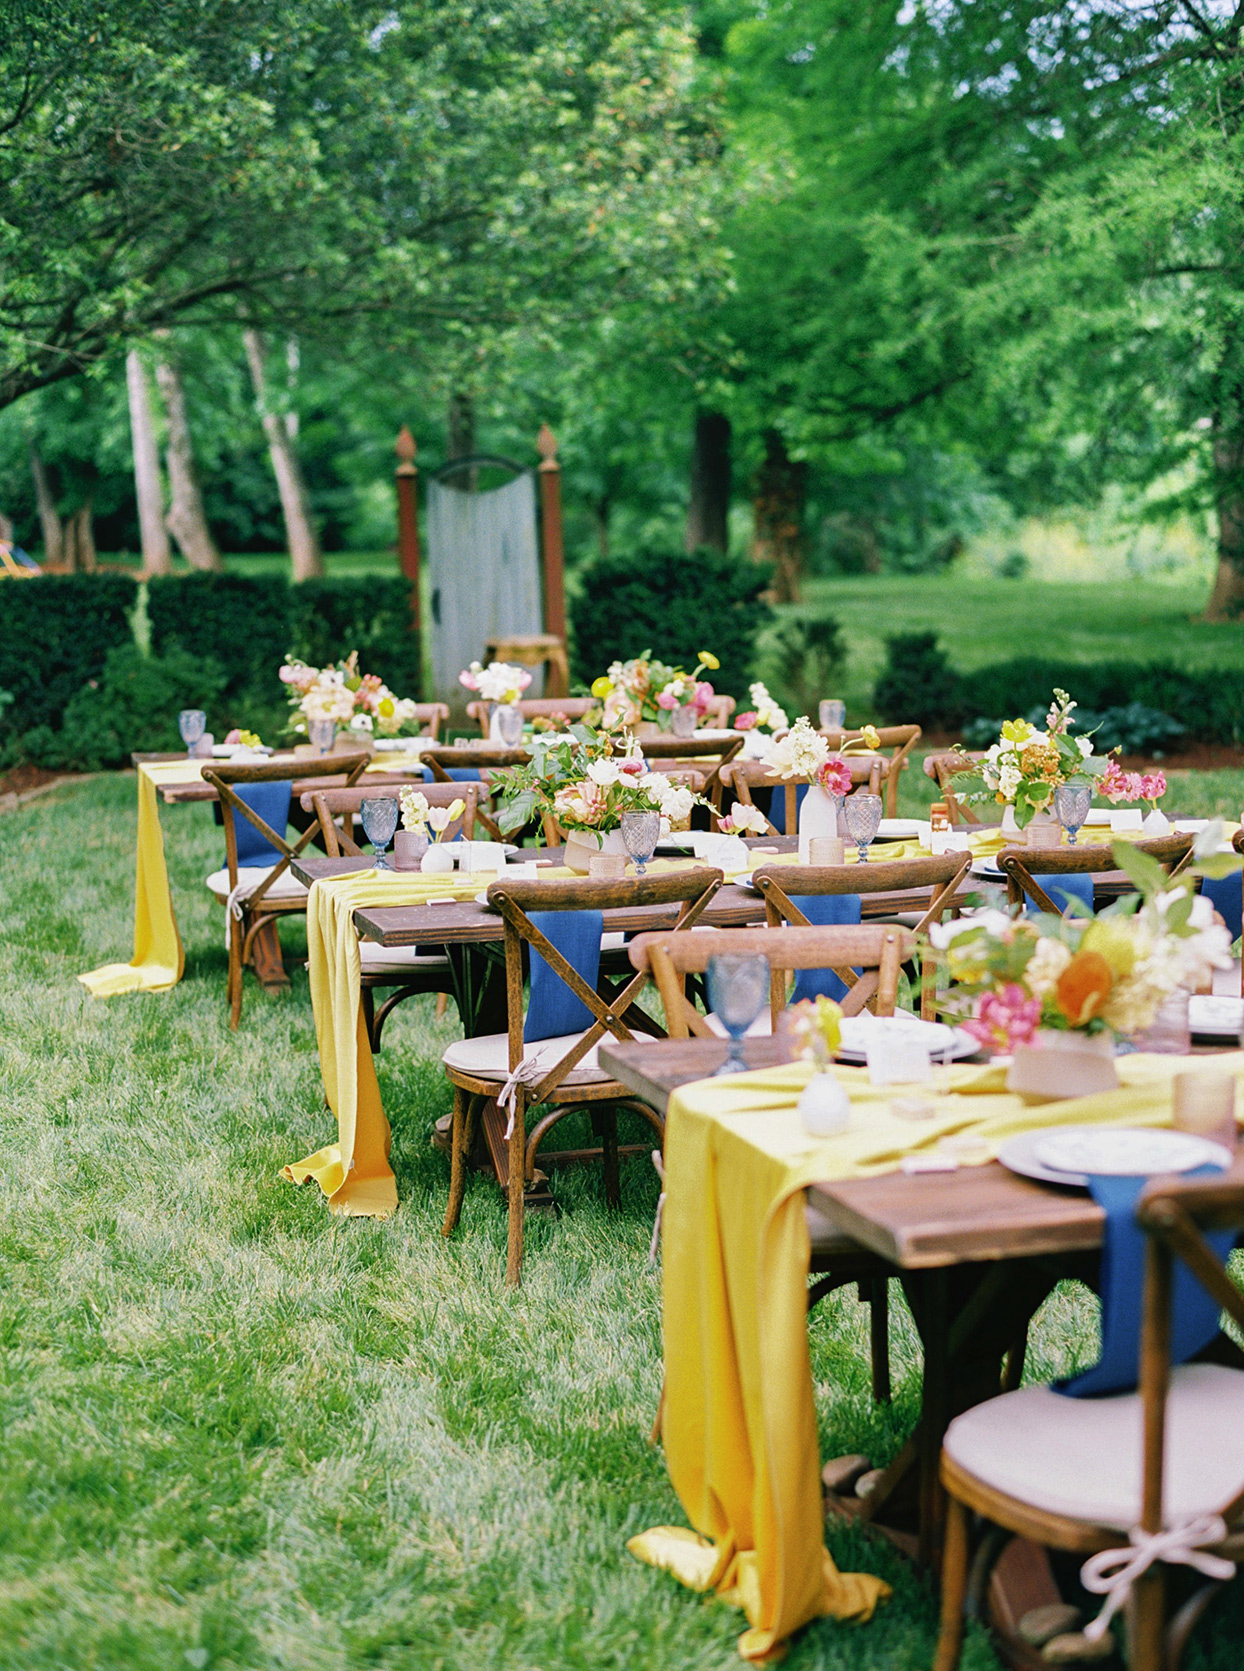 ashley scott rustic wedding reception tables on lawn